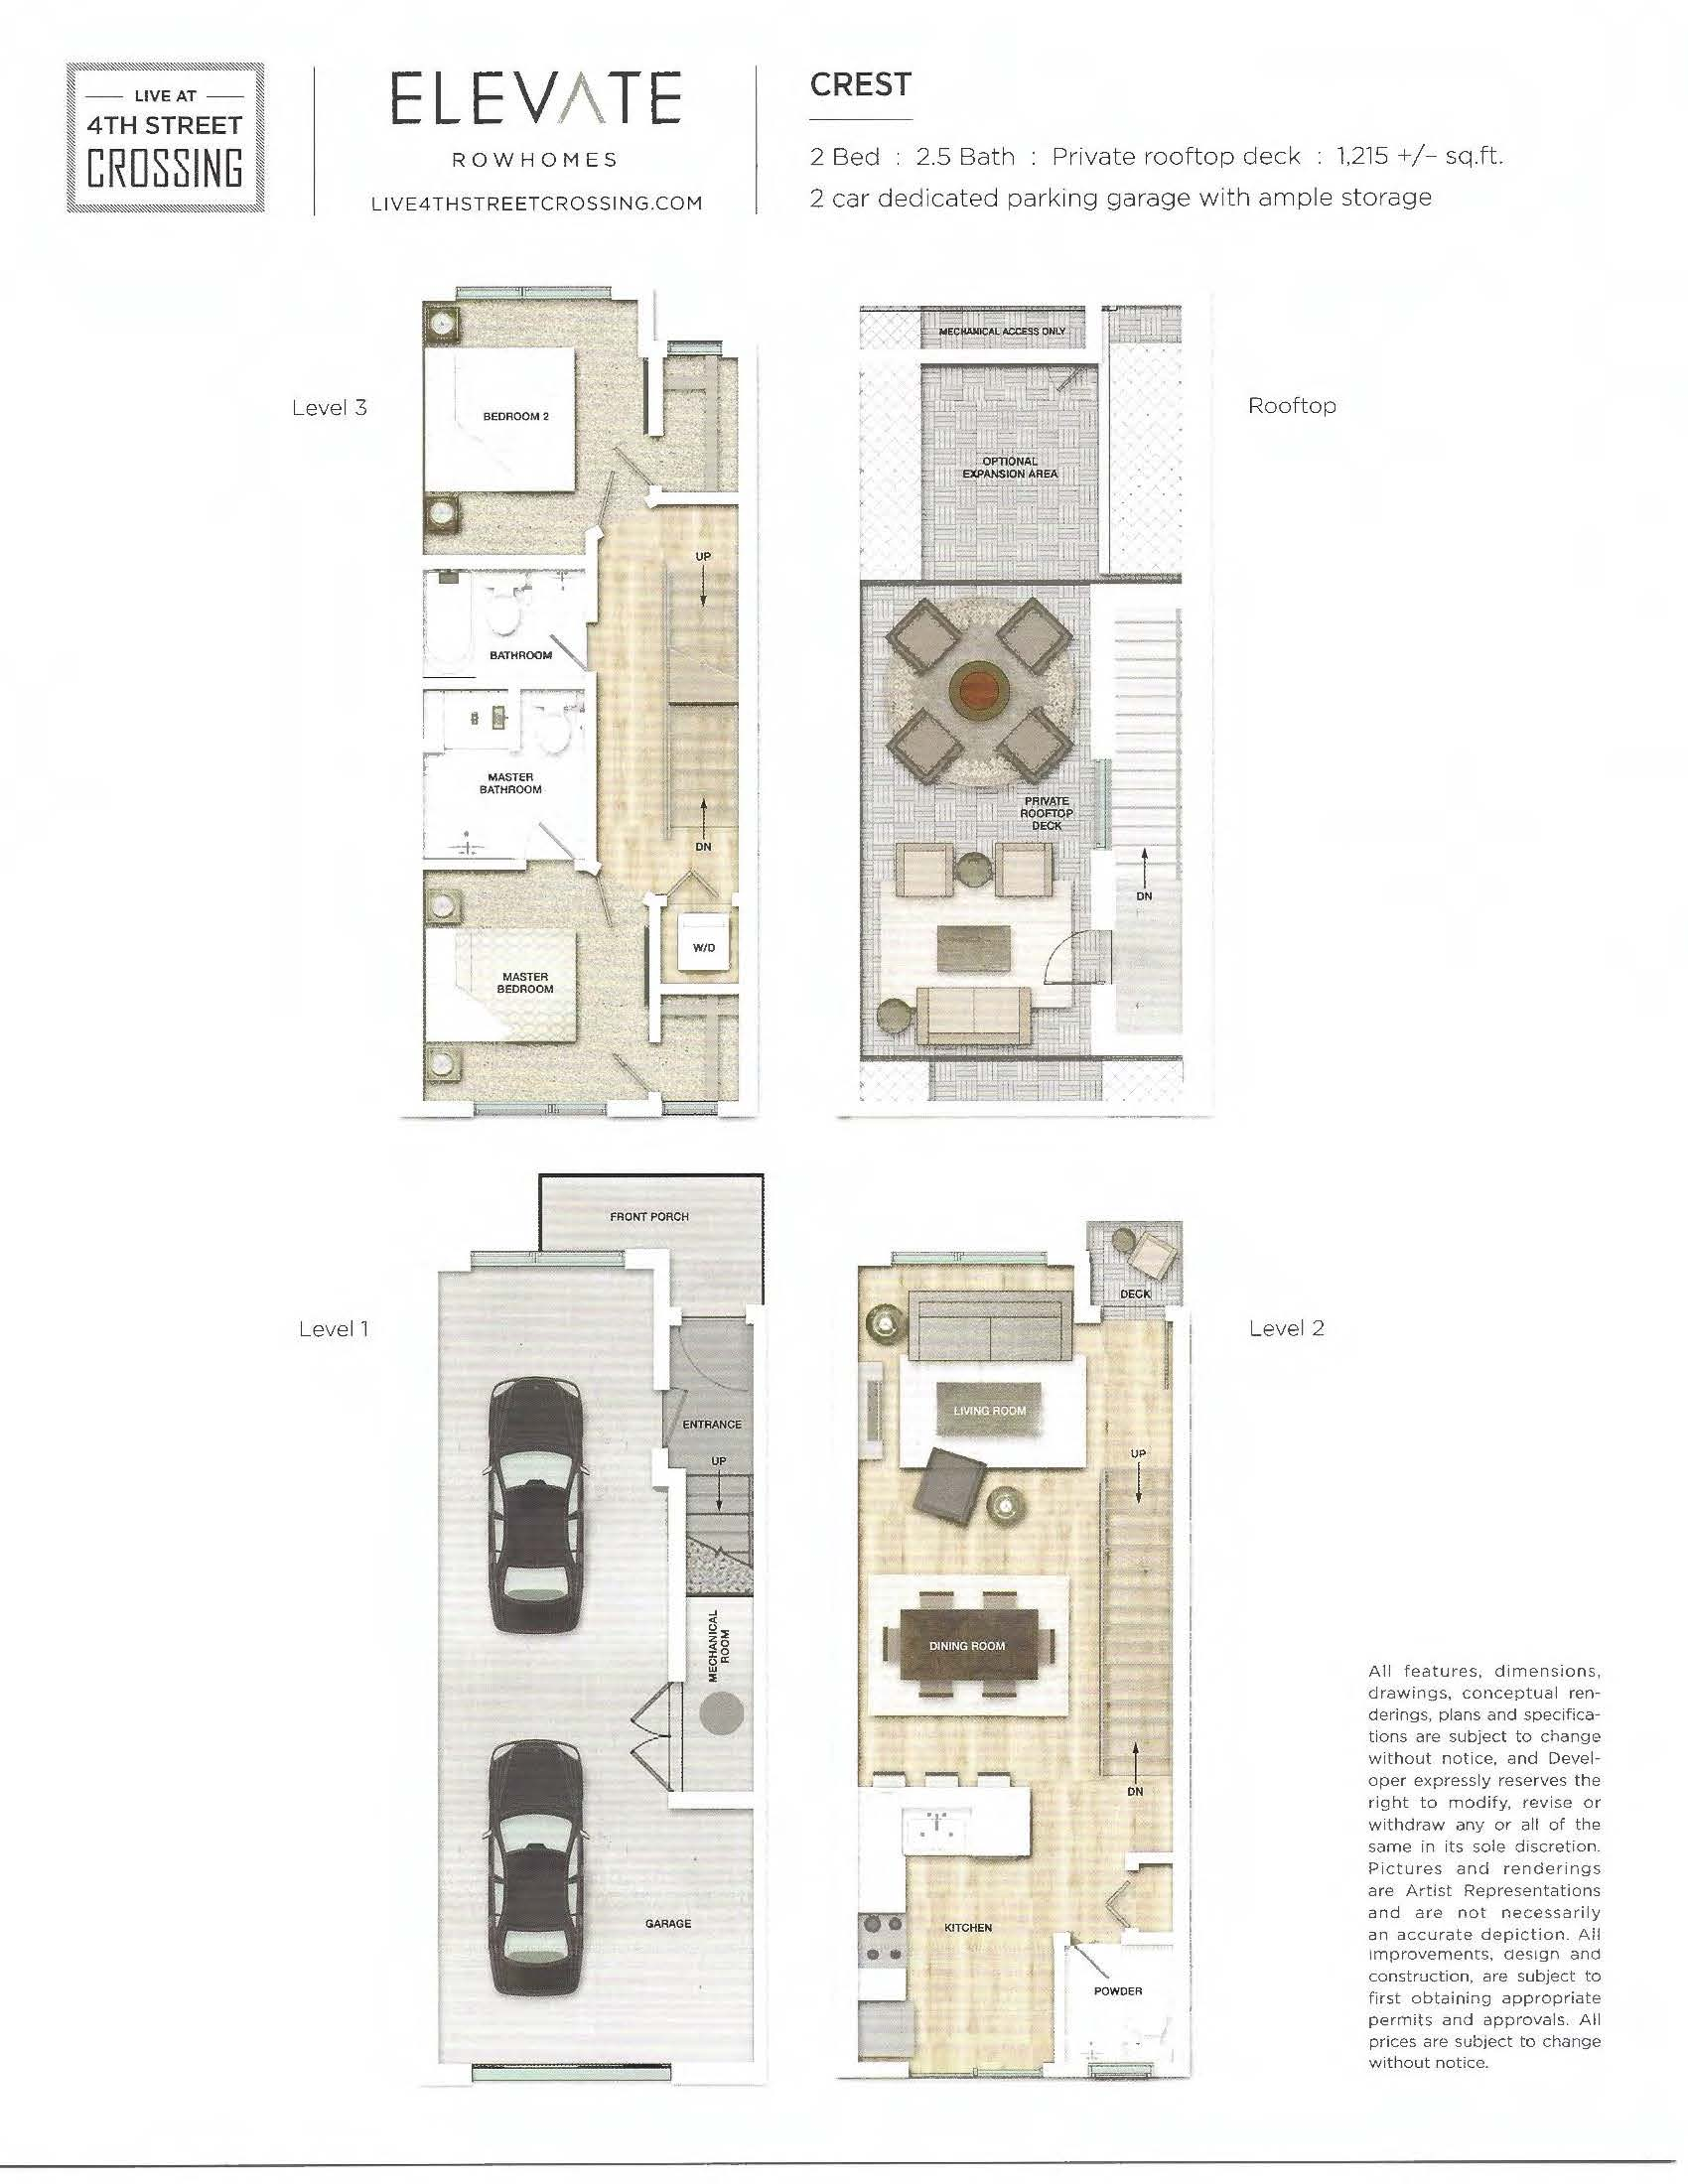 Fourth Street Crossing - Elevate Rowhomes - Crest Floorplan